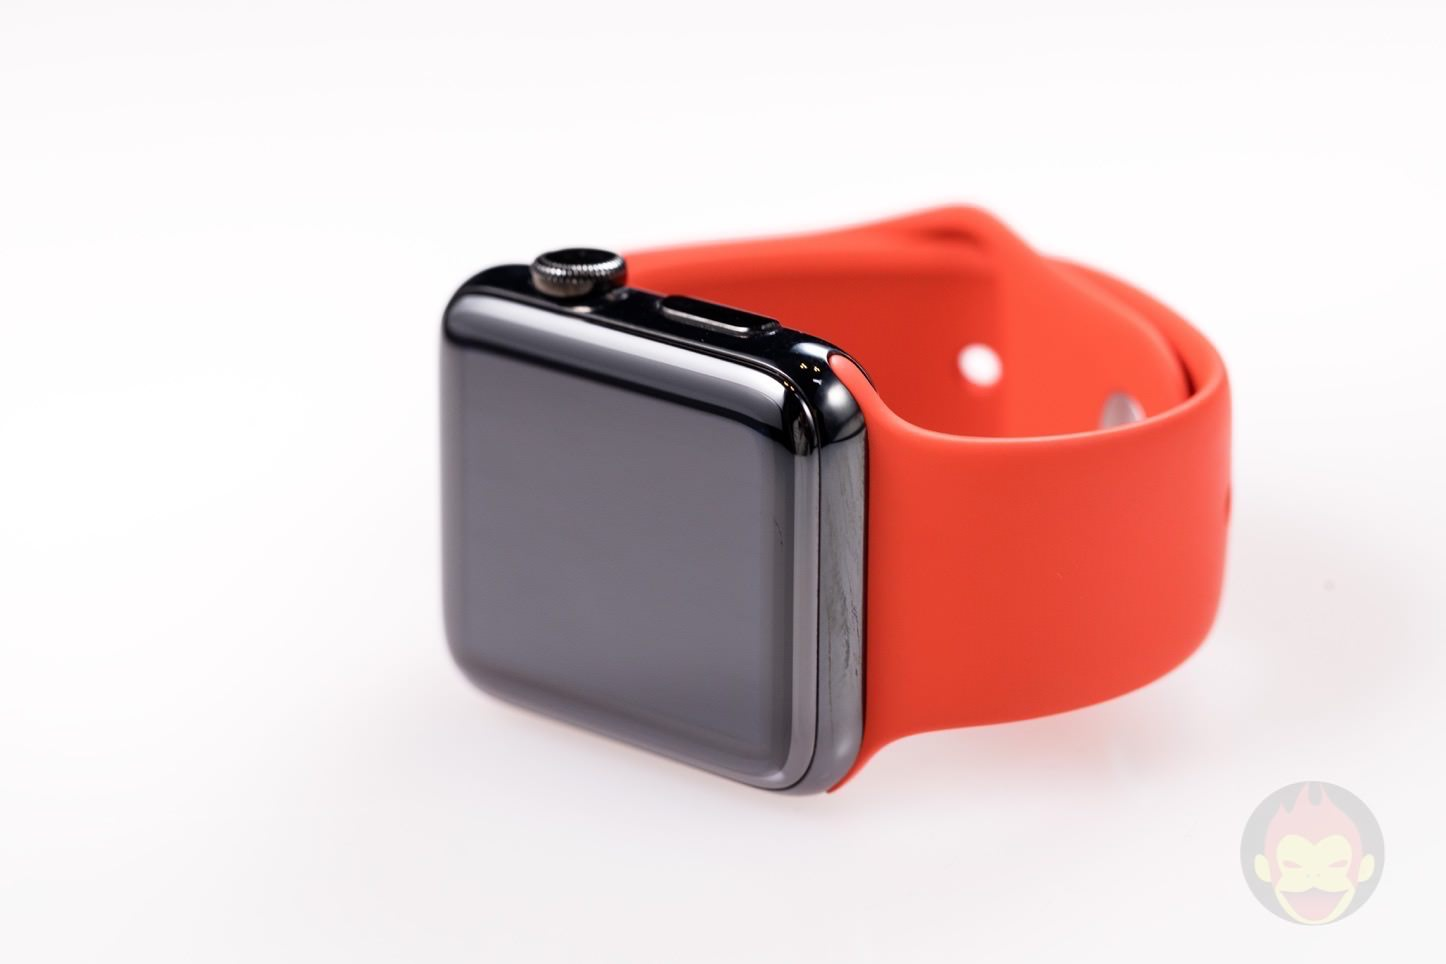 Apple-Watch-Product-Red-Sports-Band-02.jpg